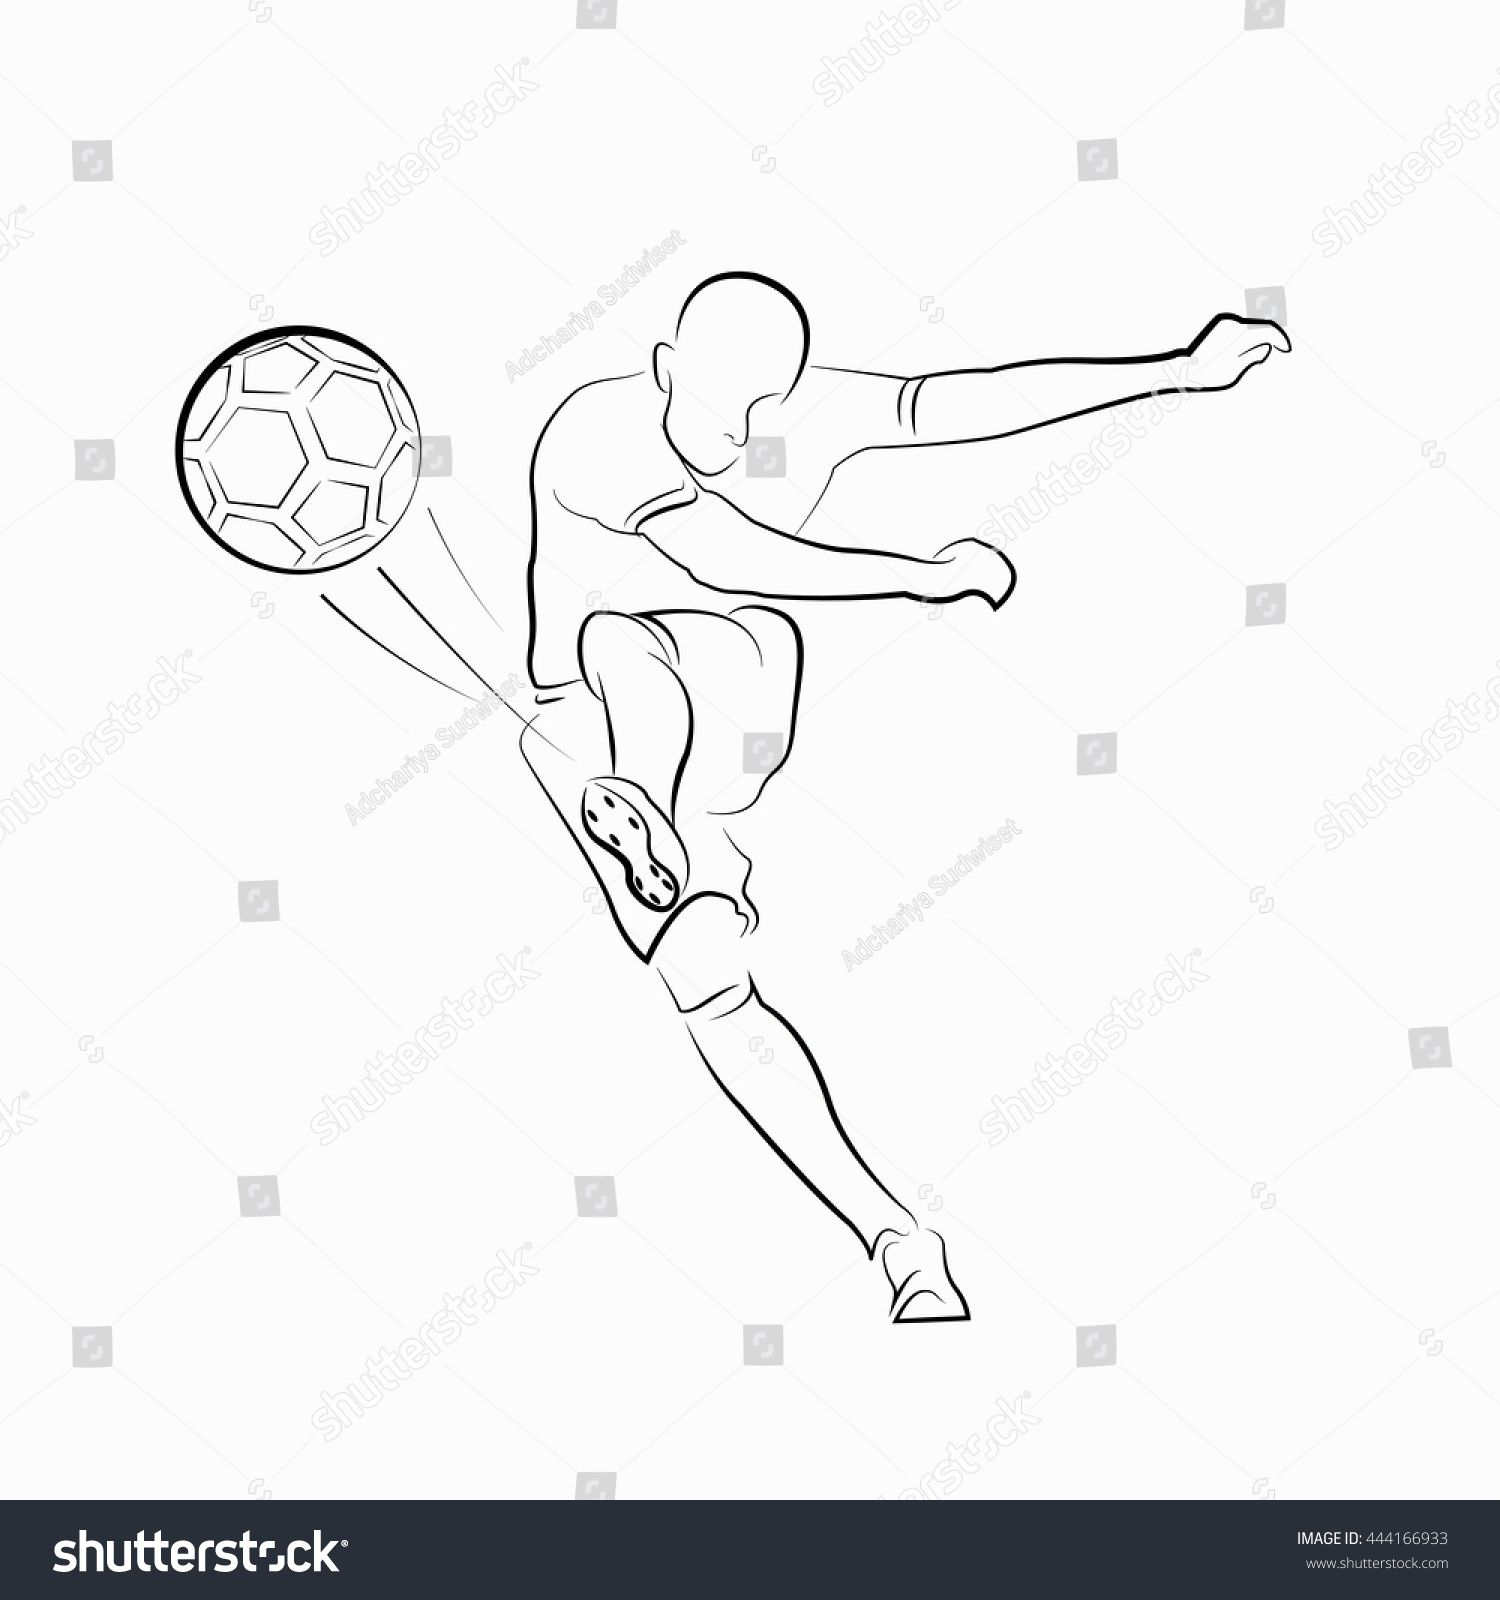 Football Soccer Player Kicking With Ball Line Drawings On White Background Football Player Drawing Football Drawing Soccer Drawing